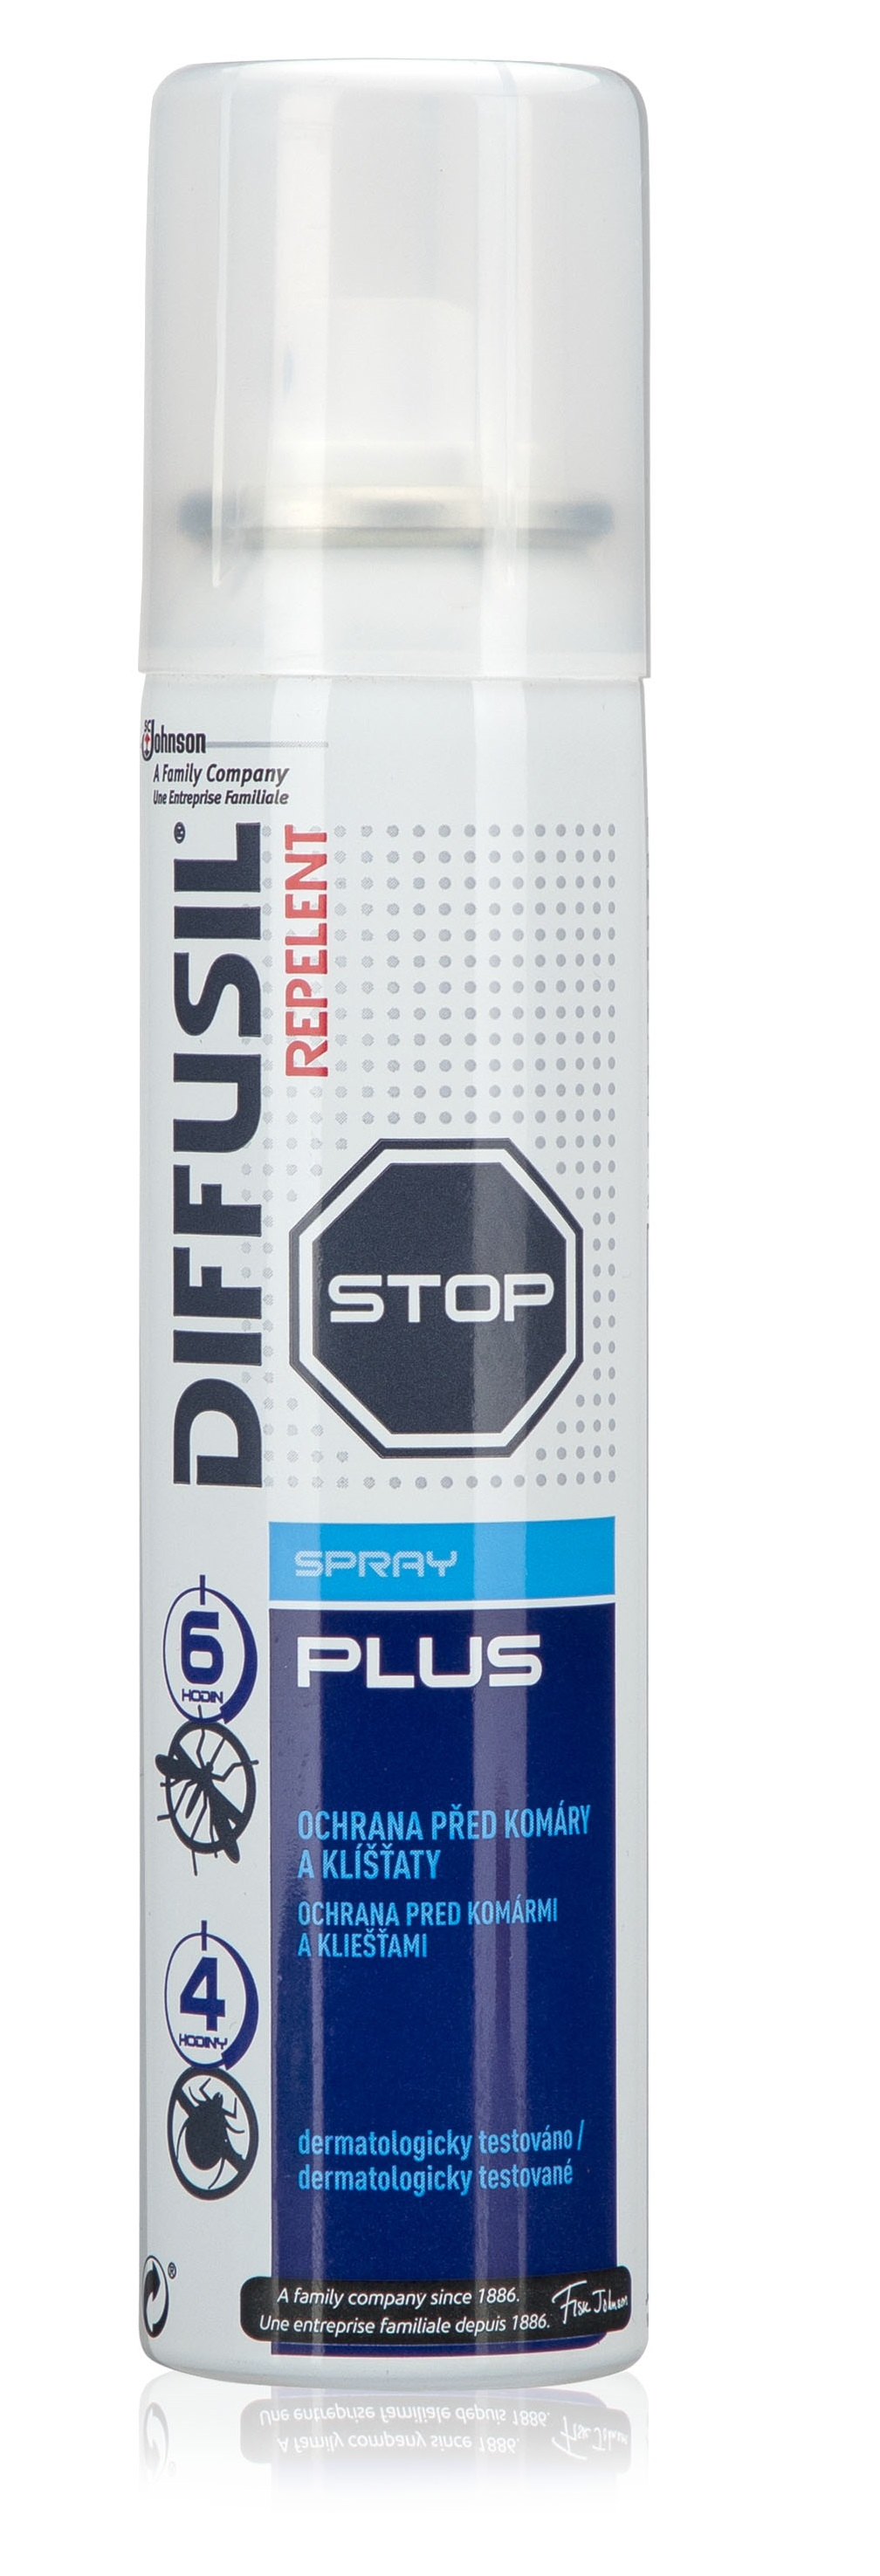 Repelent DIFFUSIL PLUS - sprej na tělo, 100ml 100ml